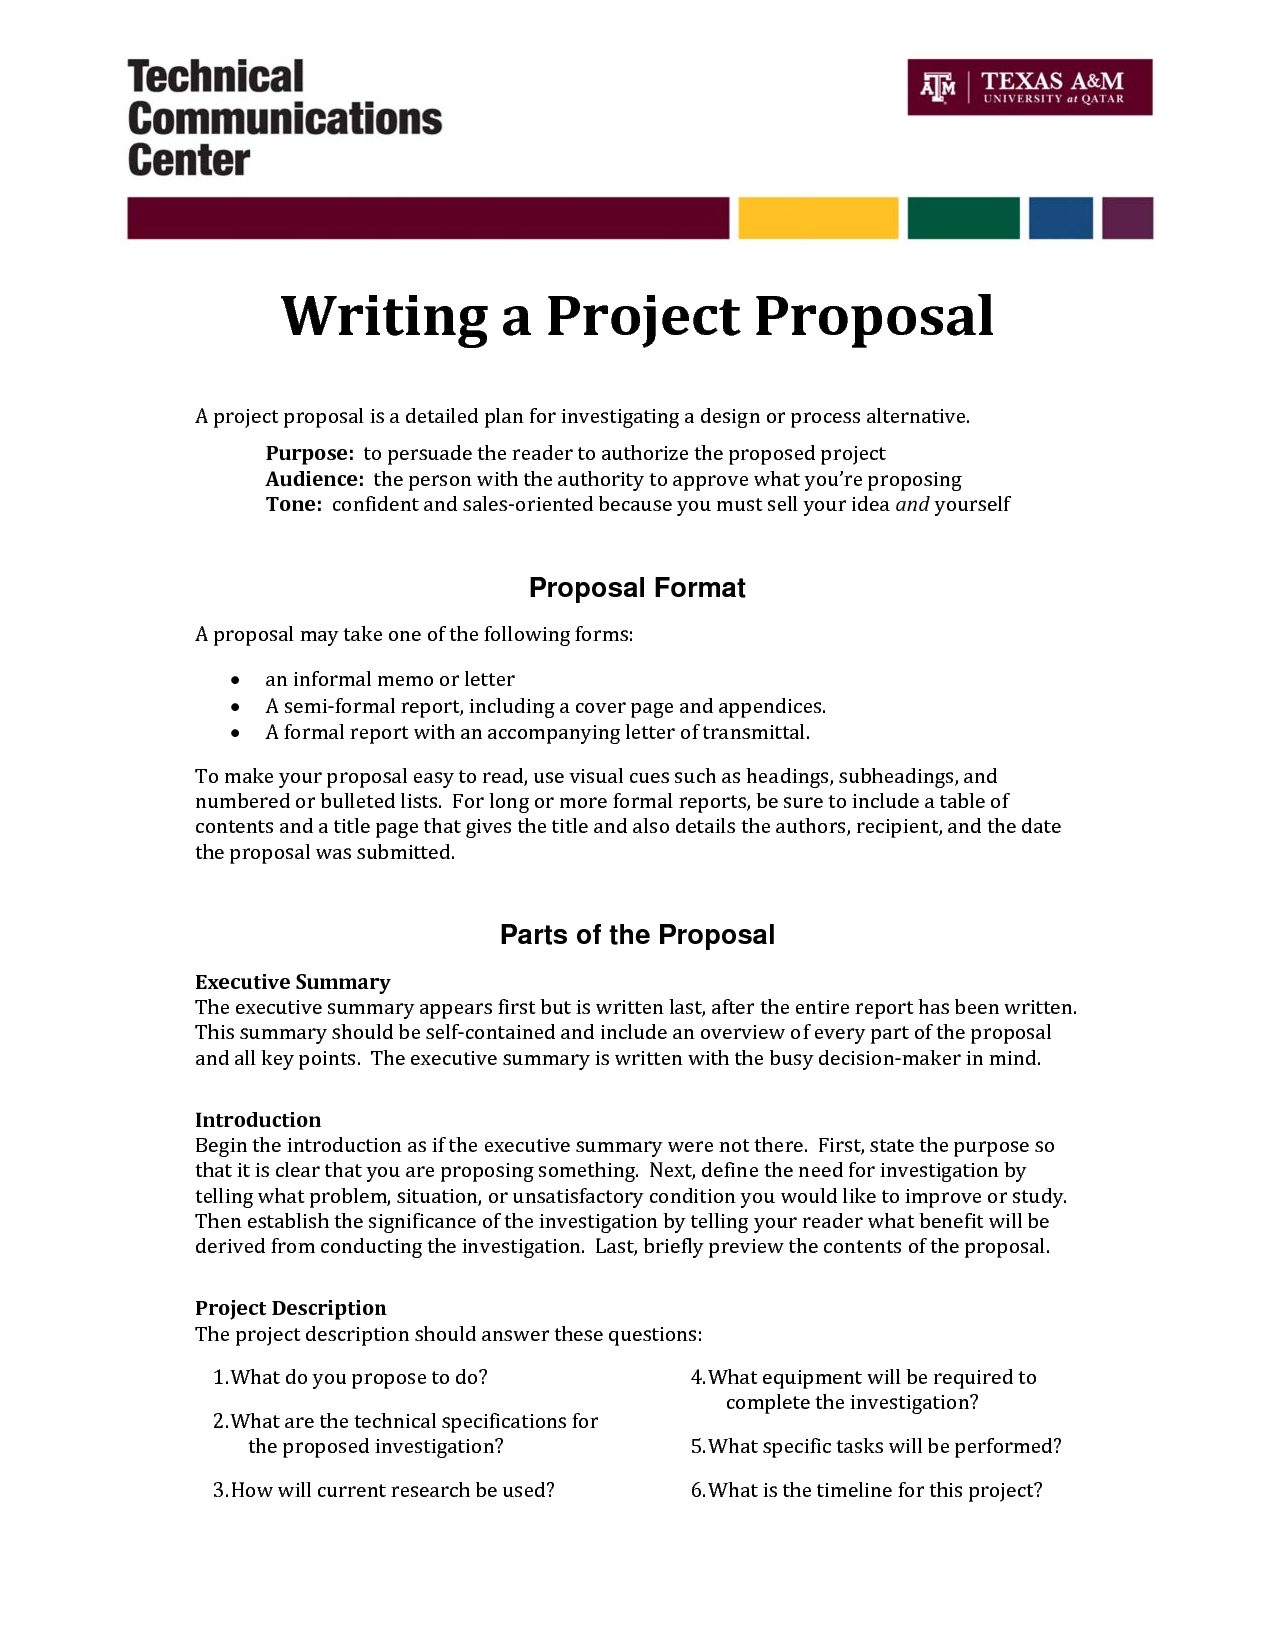 Informal proposal letter example writing a project for Writing a proposal for a new position template